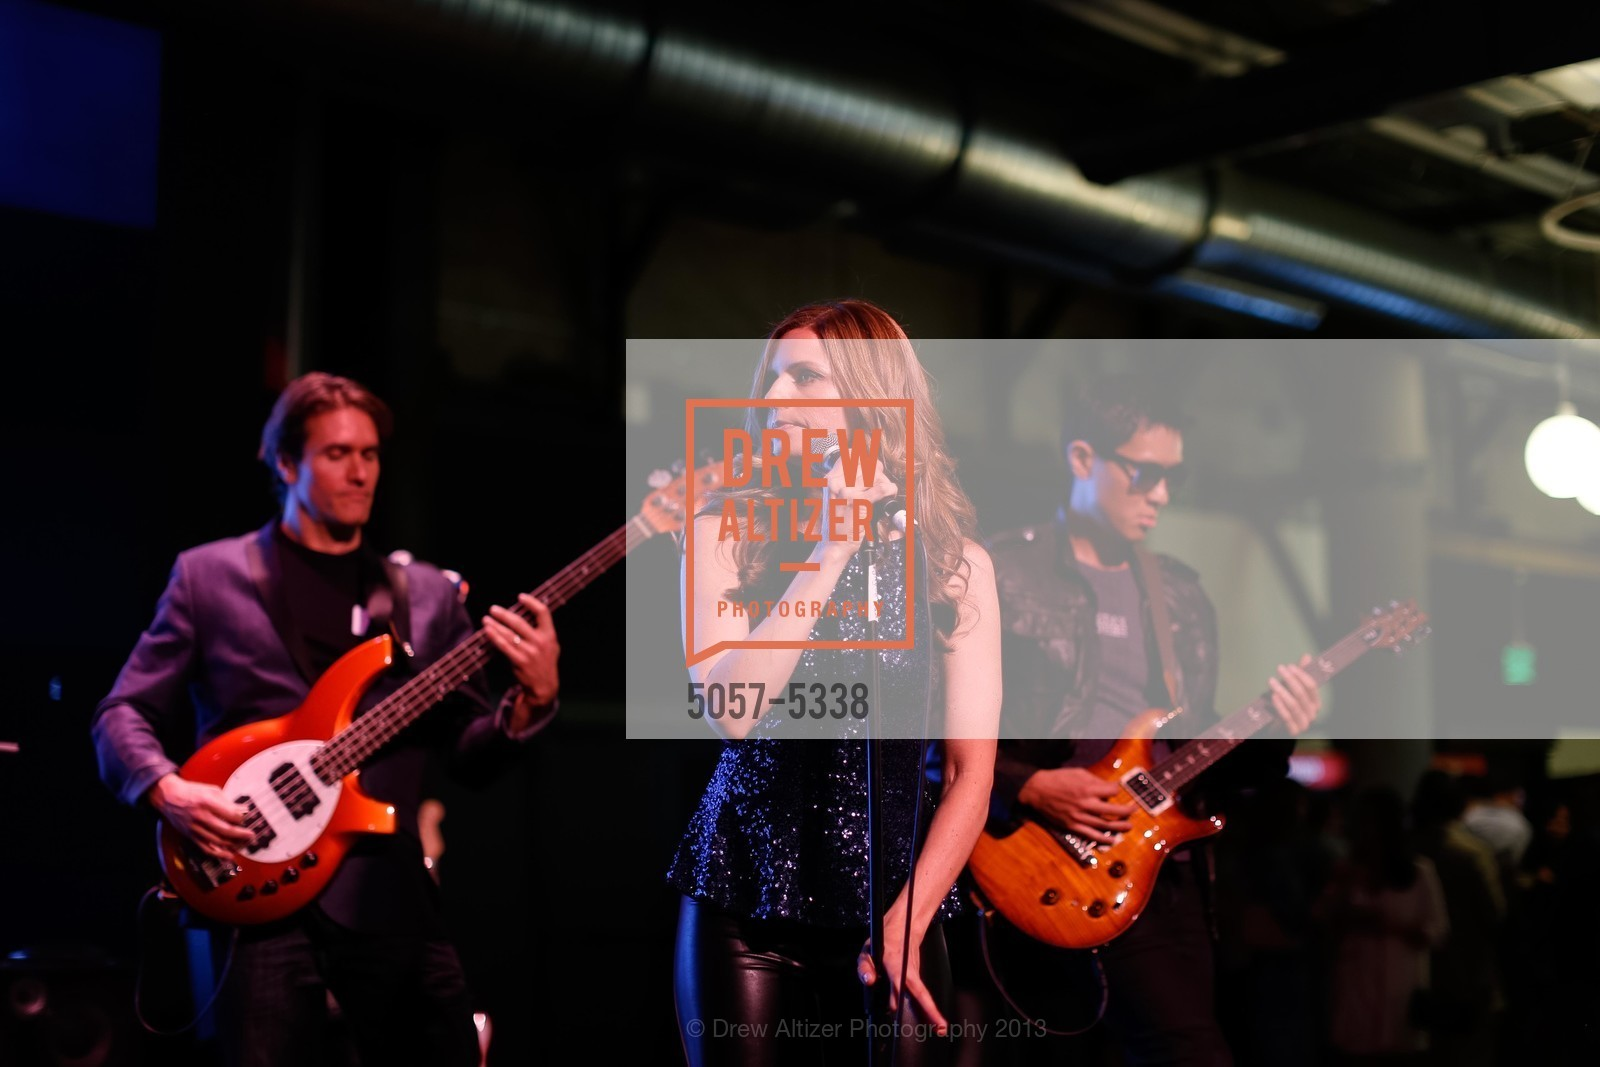 Performance By Coverflow, Photo #5057-5338